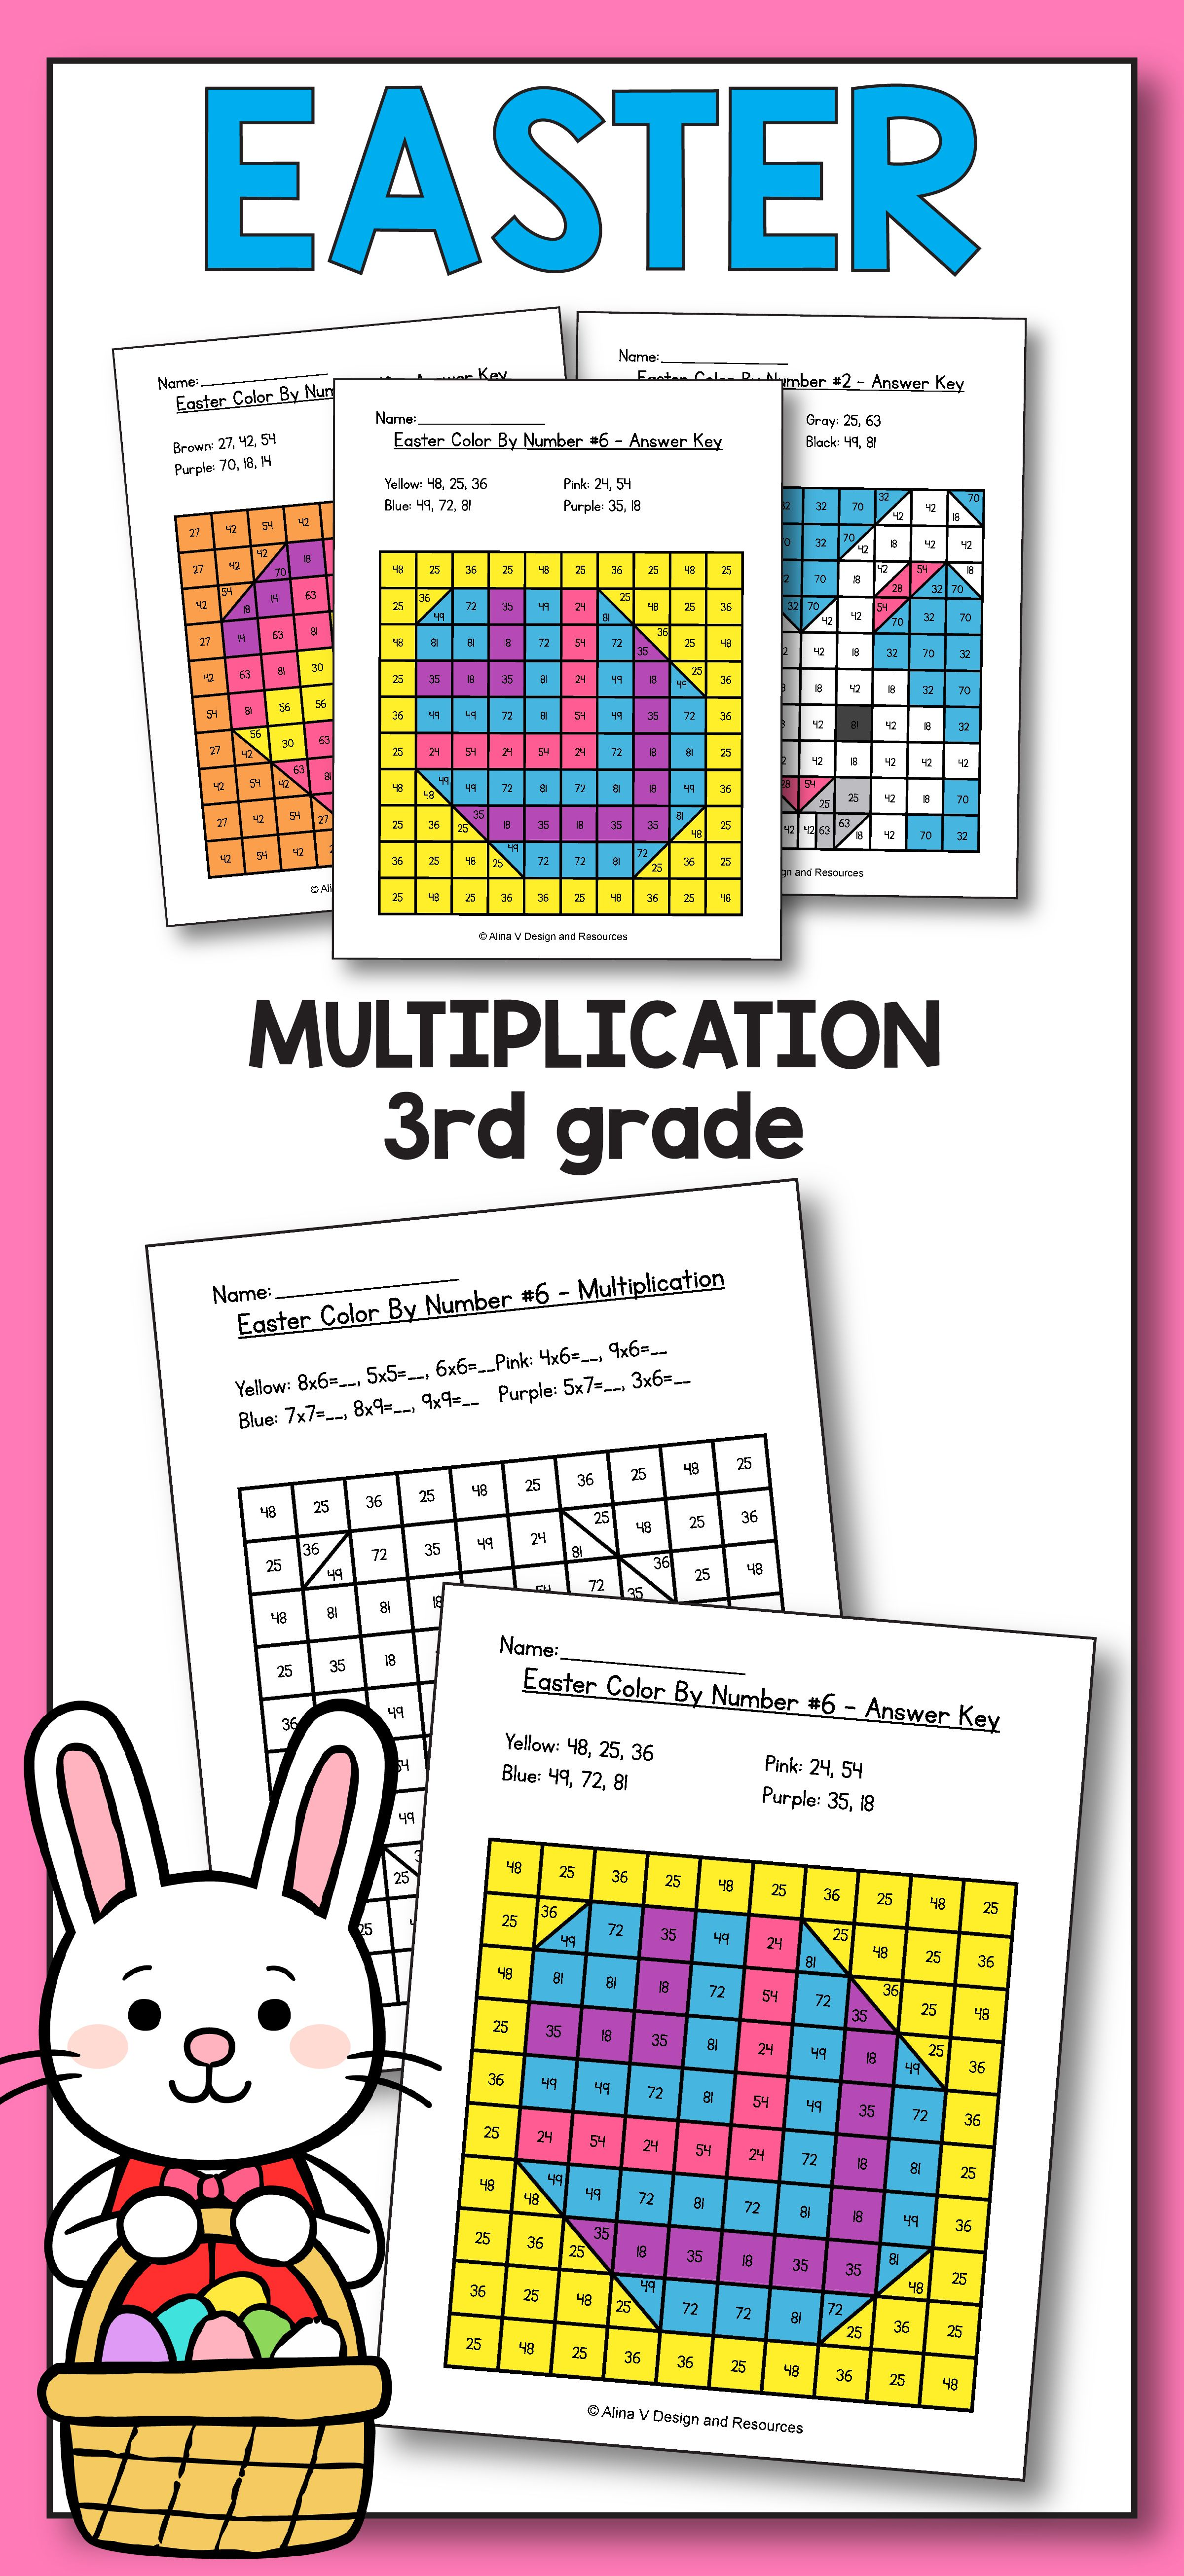 Easter Multiplication Math Worksheets for 3rd grade kids is fun with these  hundreds chart printables…   Easter math [ 5223 x 2400 Pixel ]